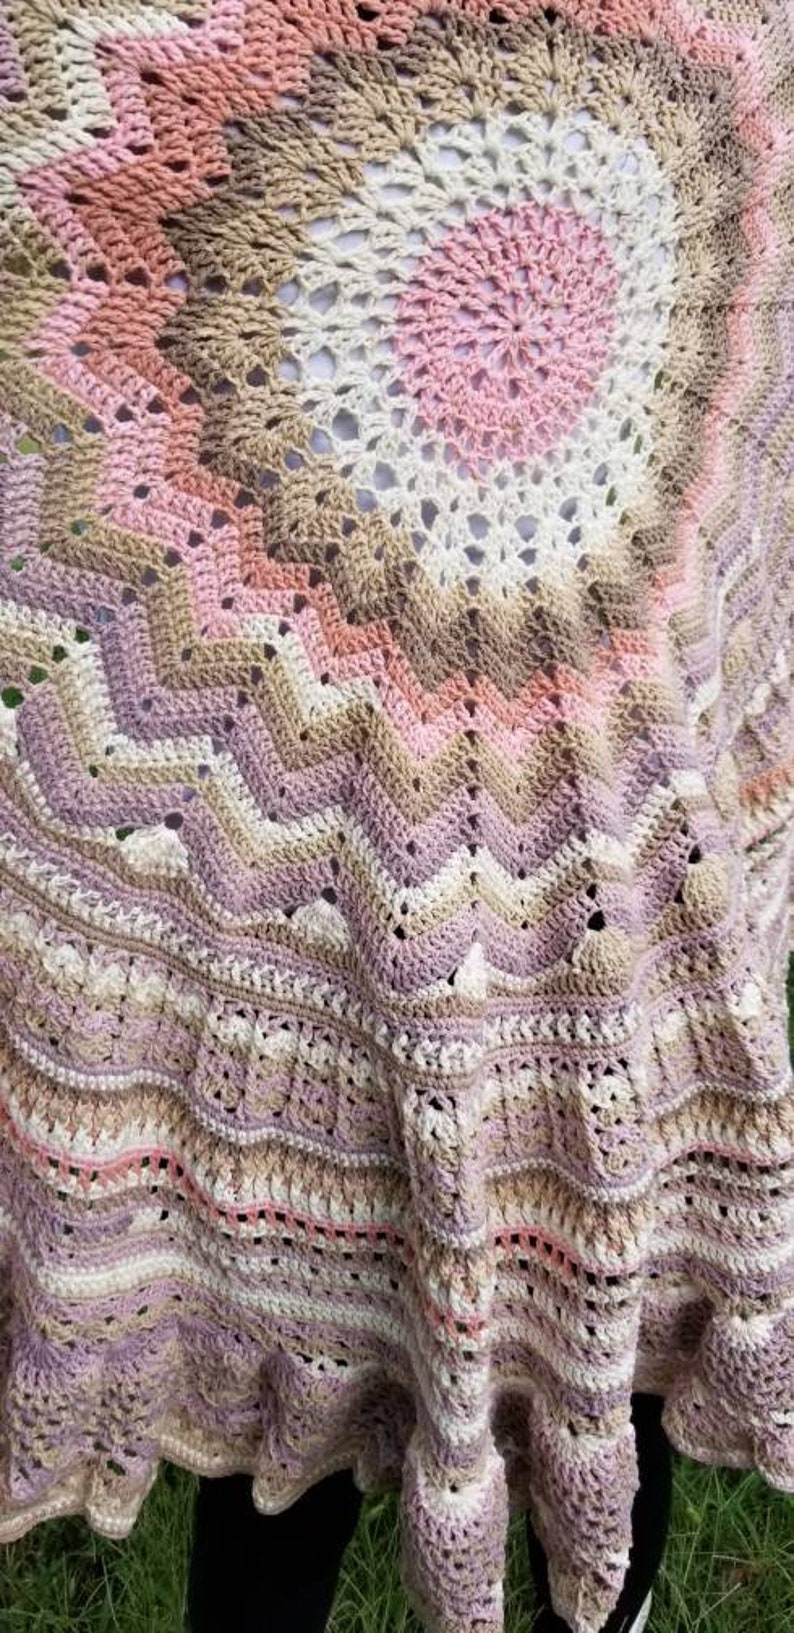 Handmade Large Crochet Throw Blanket in Lavender Rose and neutral tones soft and elegant design Gift for for her  Ready to ship